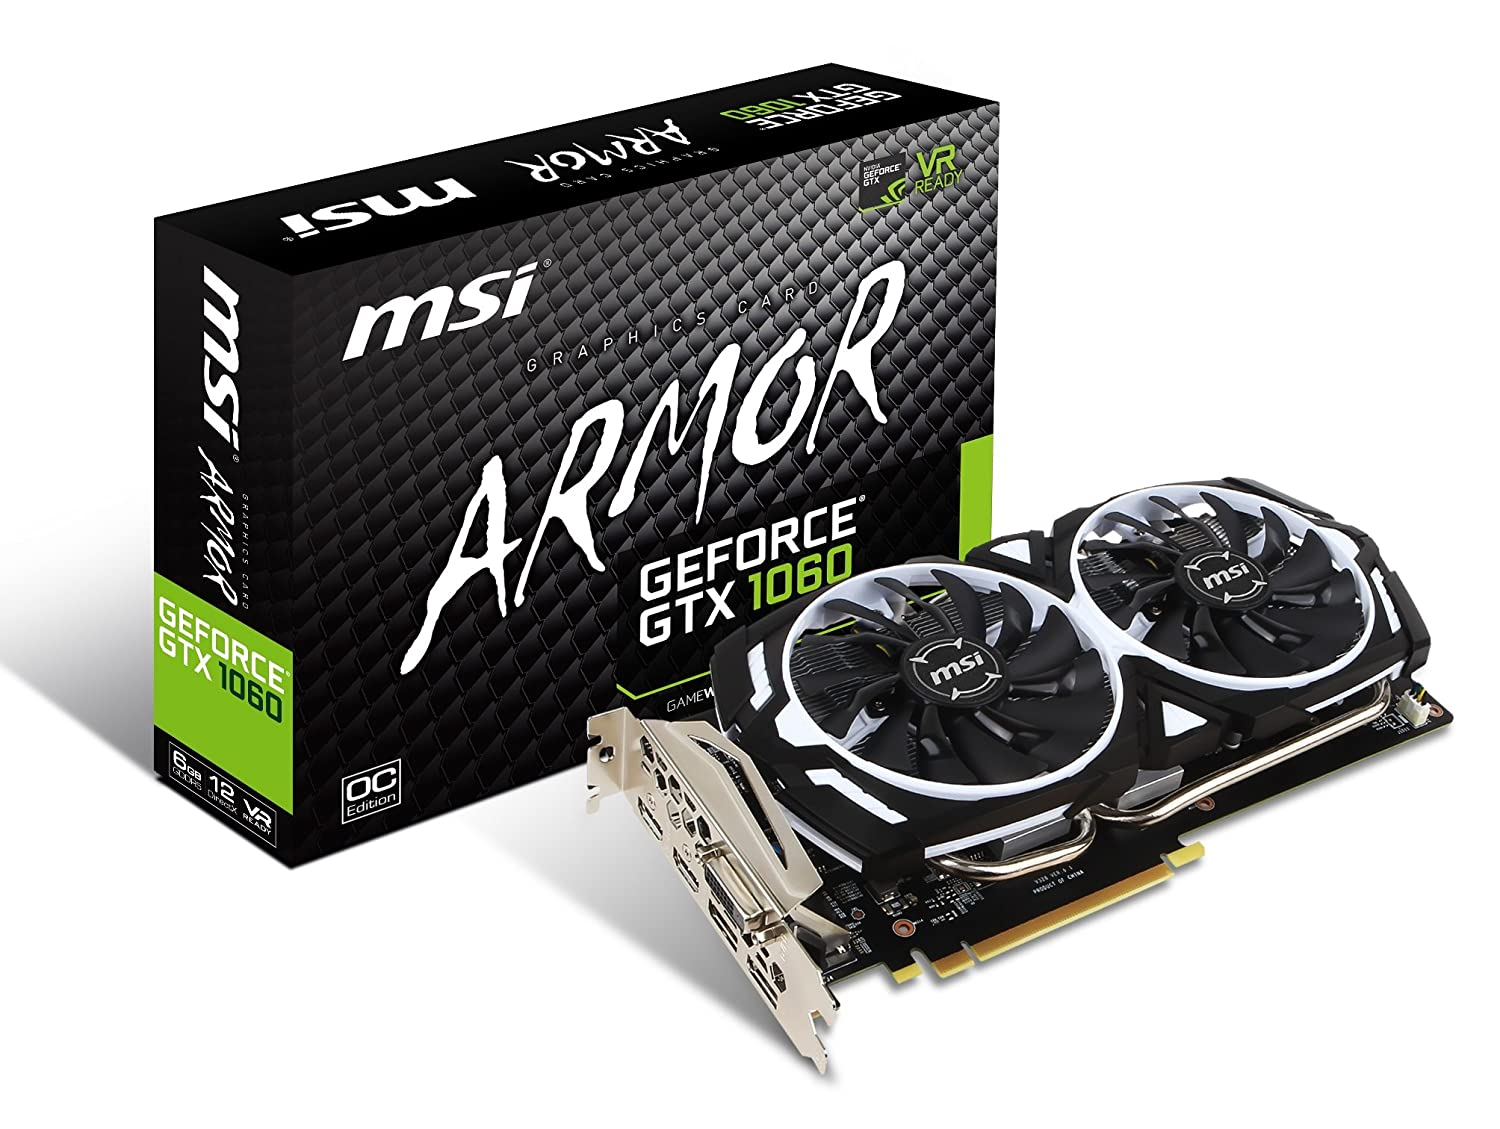 Amazon.com: MSI GAMING GeForce GTX 1060 6GB GDRR5 192-bit HDCP Support  DirectX 12 Dual Fan VR Ready OC Graphics Card (GTX 1060 ARMOR 6G OCV1):  Computers & ...